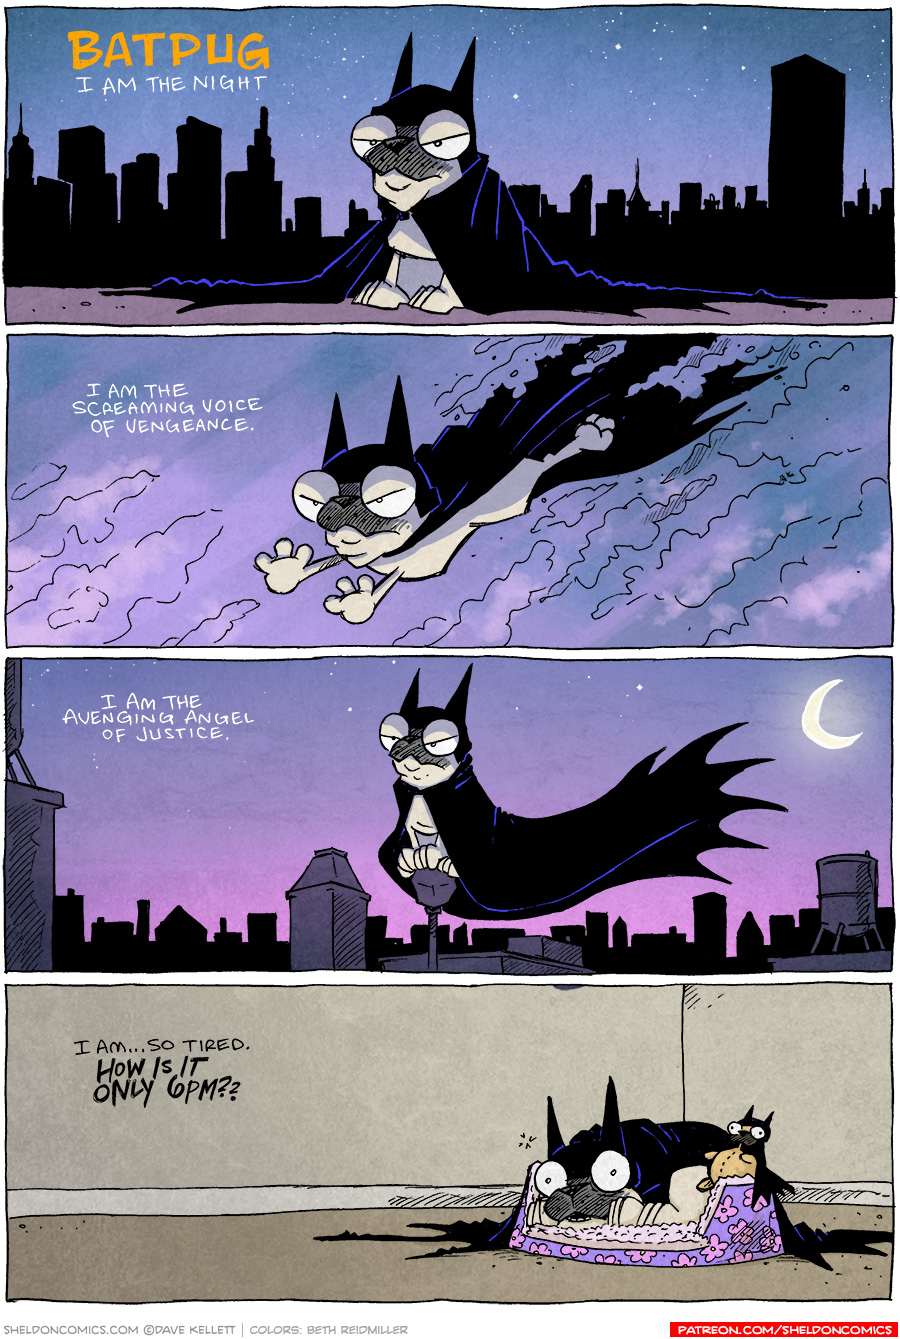 strip for November / 17 / 2020 - BatPug Returns!